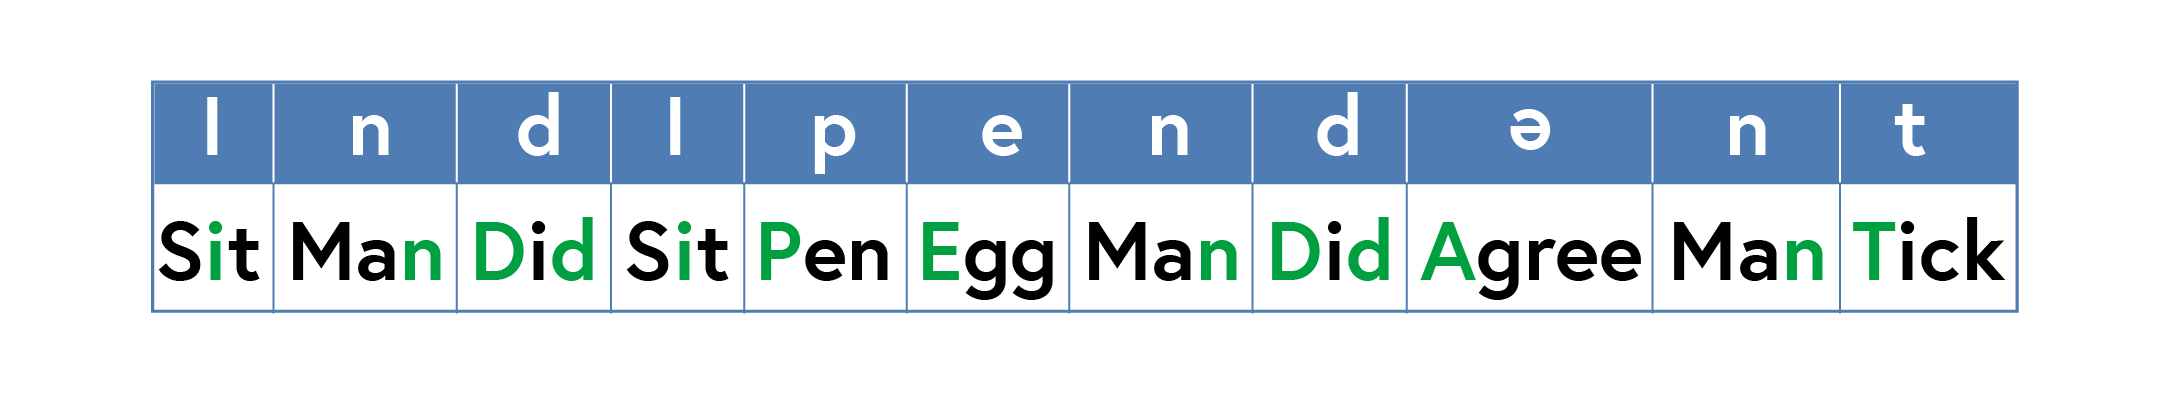 The word in a table spelt individually as I n d I p e n d e n t underneath each letter is a word that helps pronounce as Sit, Man, Did, Sit, Pen, Egg, Man, Did, Agree, Man, Tick